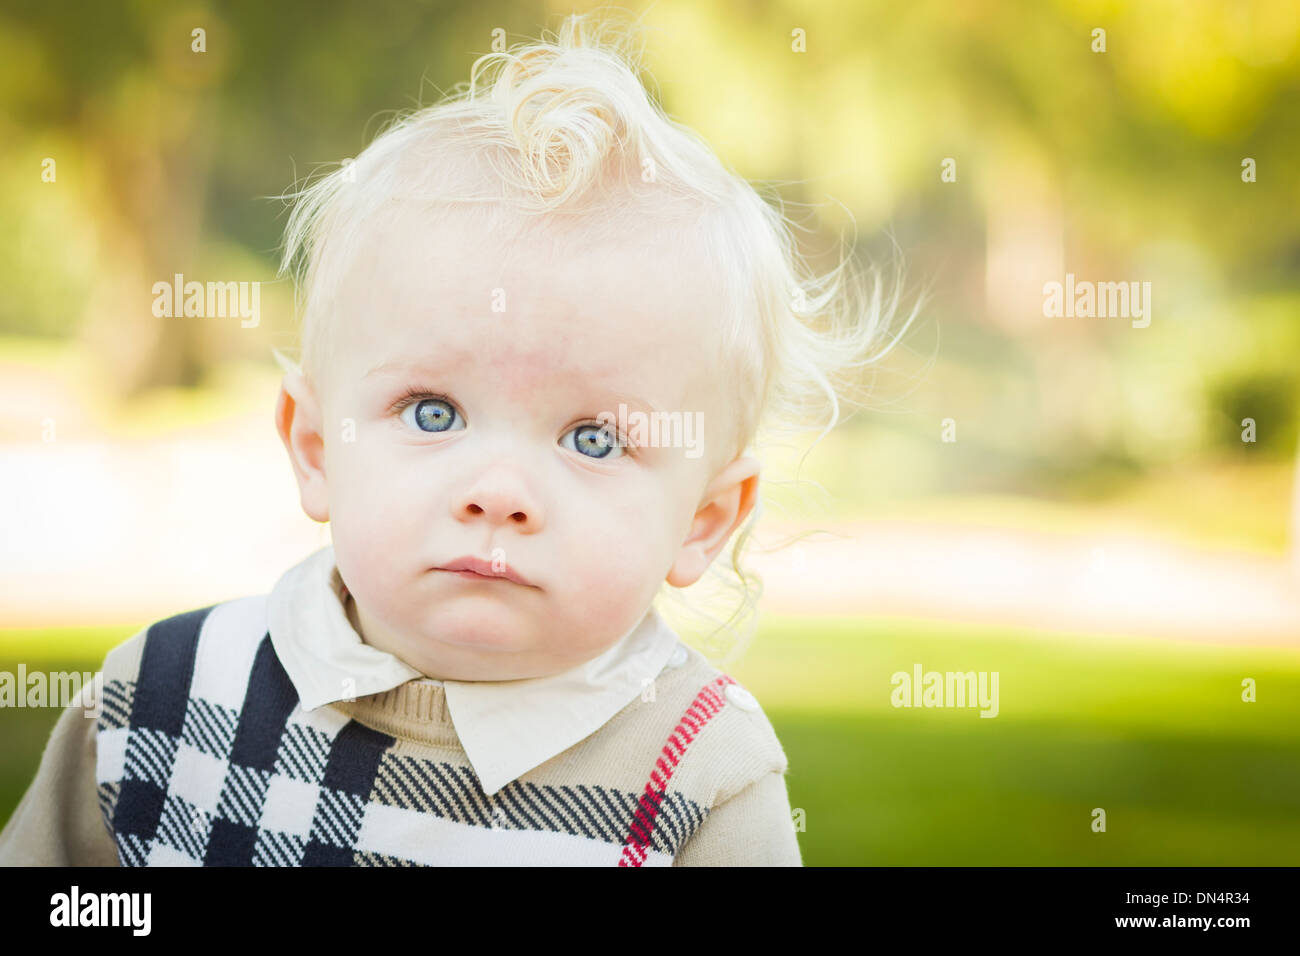 a49c6a6ff Adorable Little Blonde Baby Boy Outdoors at the Park. - Stock Image